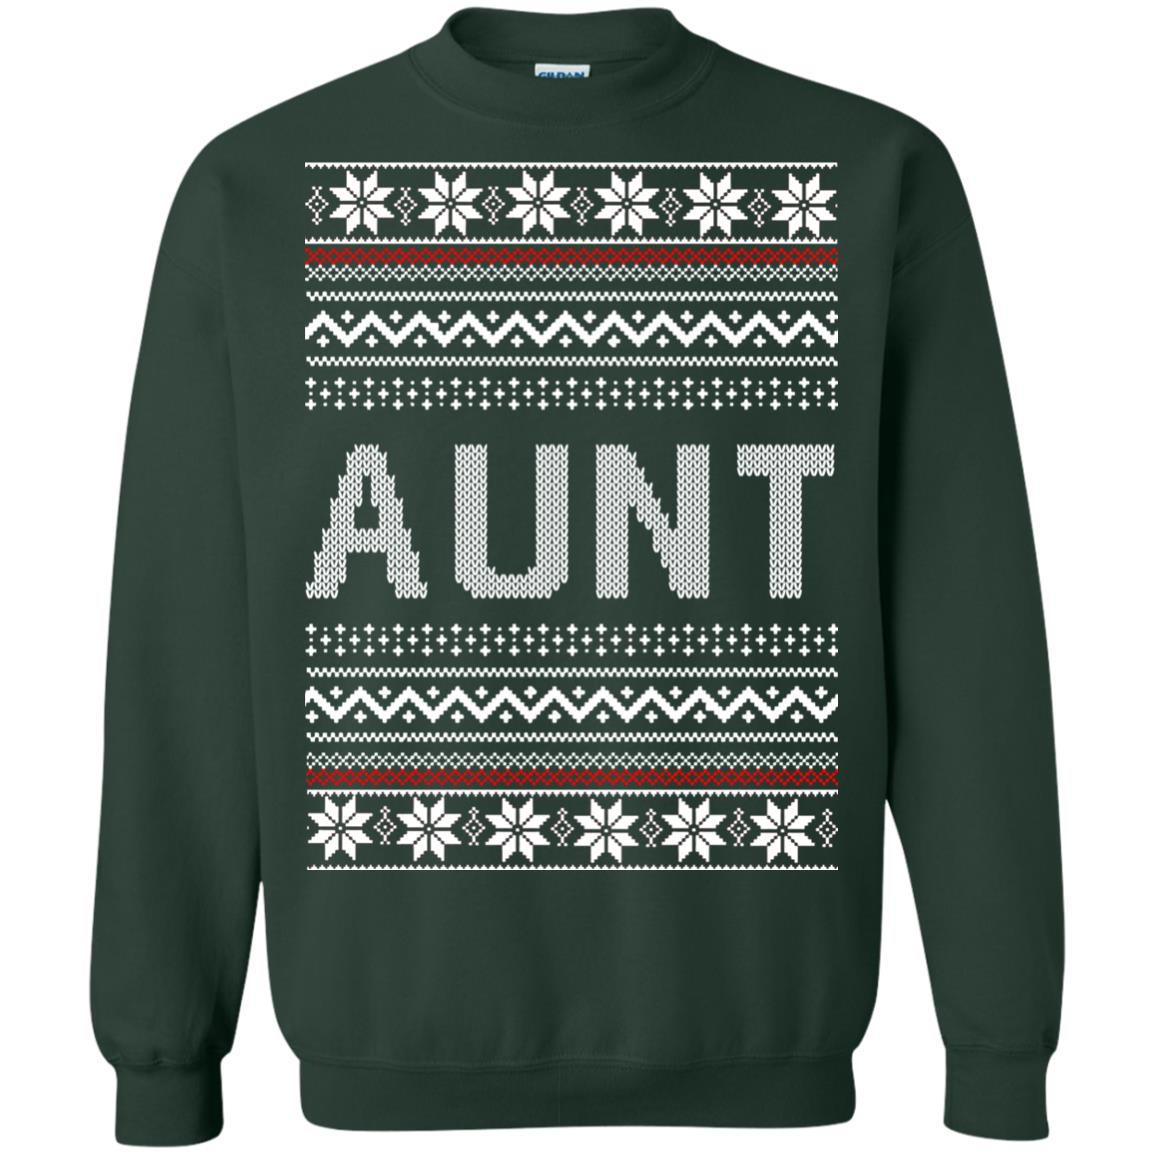 image 4620 - Aunt Ugly Christmas Sweater, Shirt, Hoodie